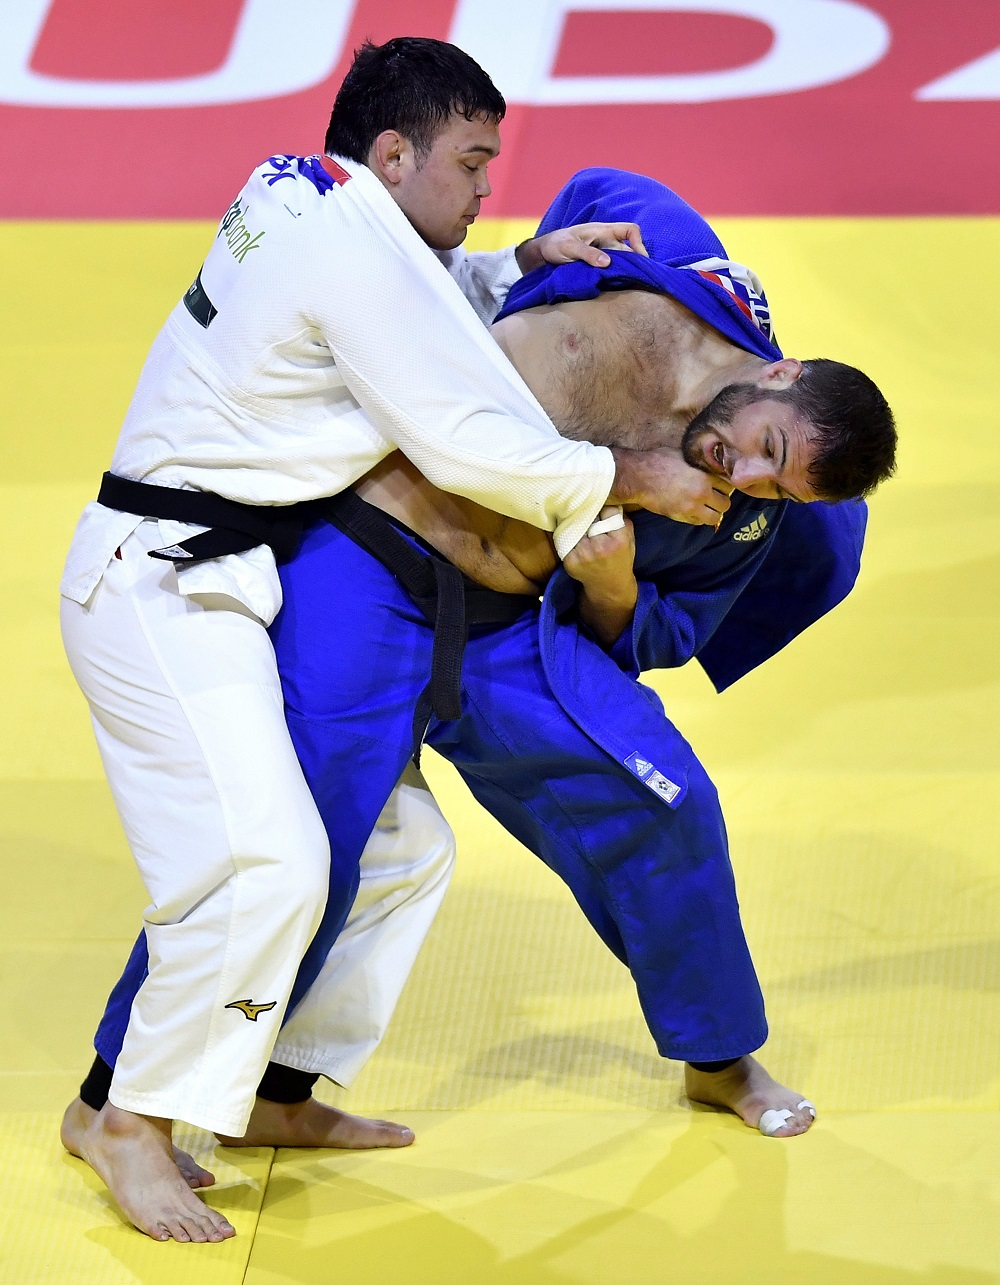 Aaron Wolf (left) defeated Georgia's Varlam Liparteliani and won the gold medal at the judo world championships in Budapest, Hungary. September 2, 2017. (© AP Images)